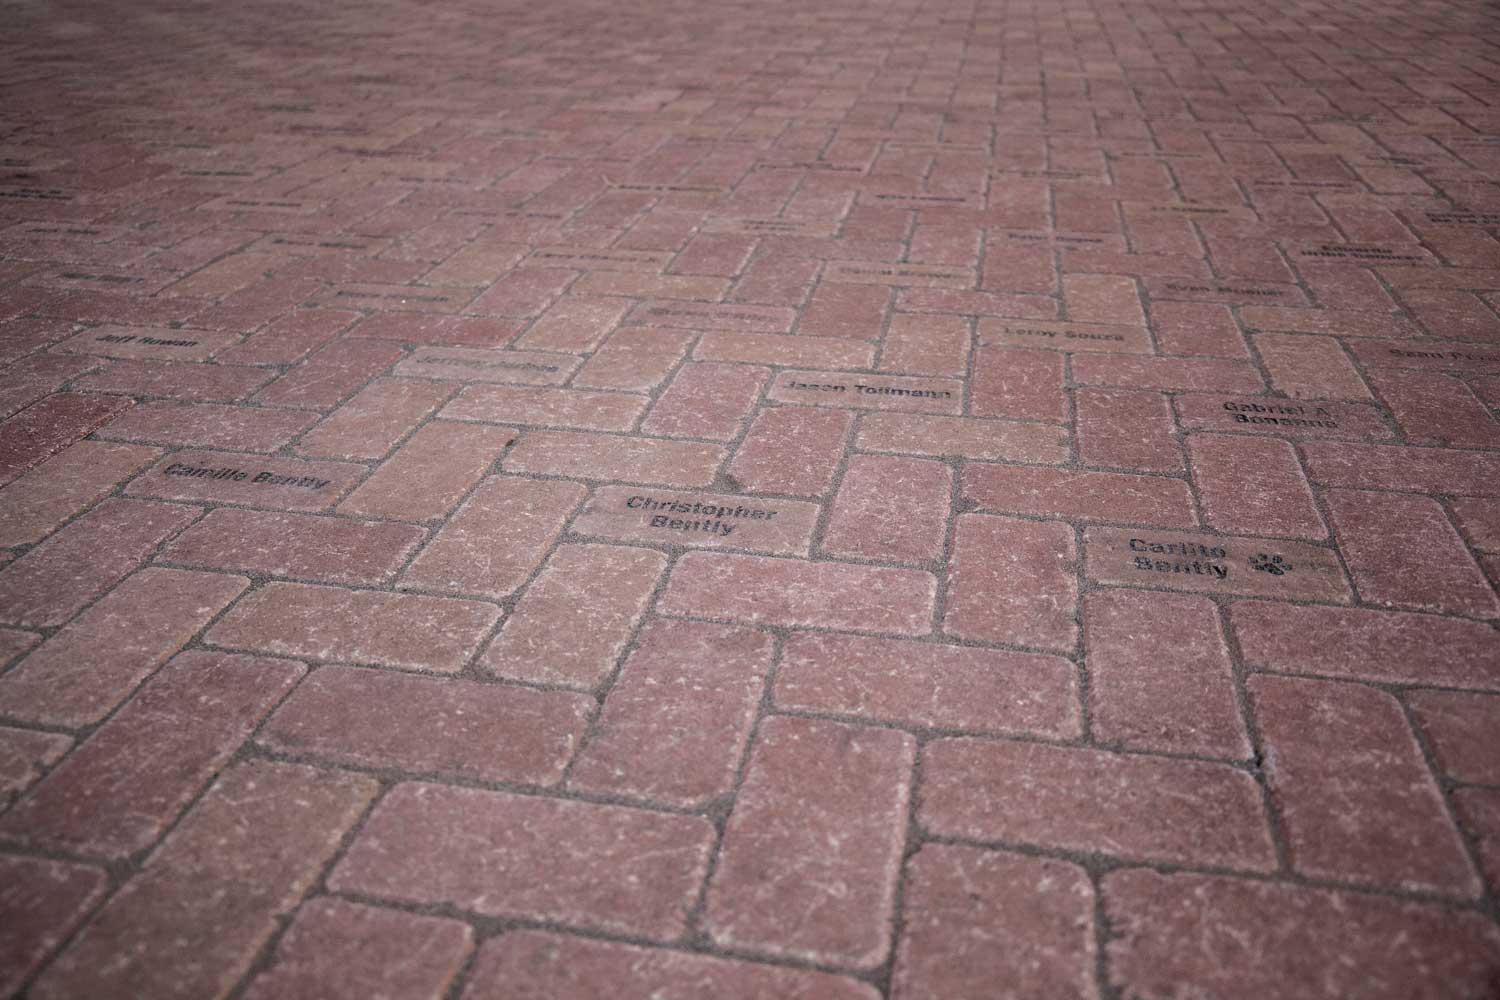 The bricks on our campus, inscribed with the names of those who brought it to fruition.